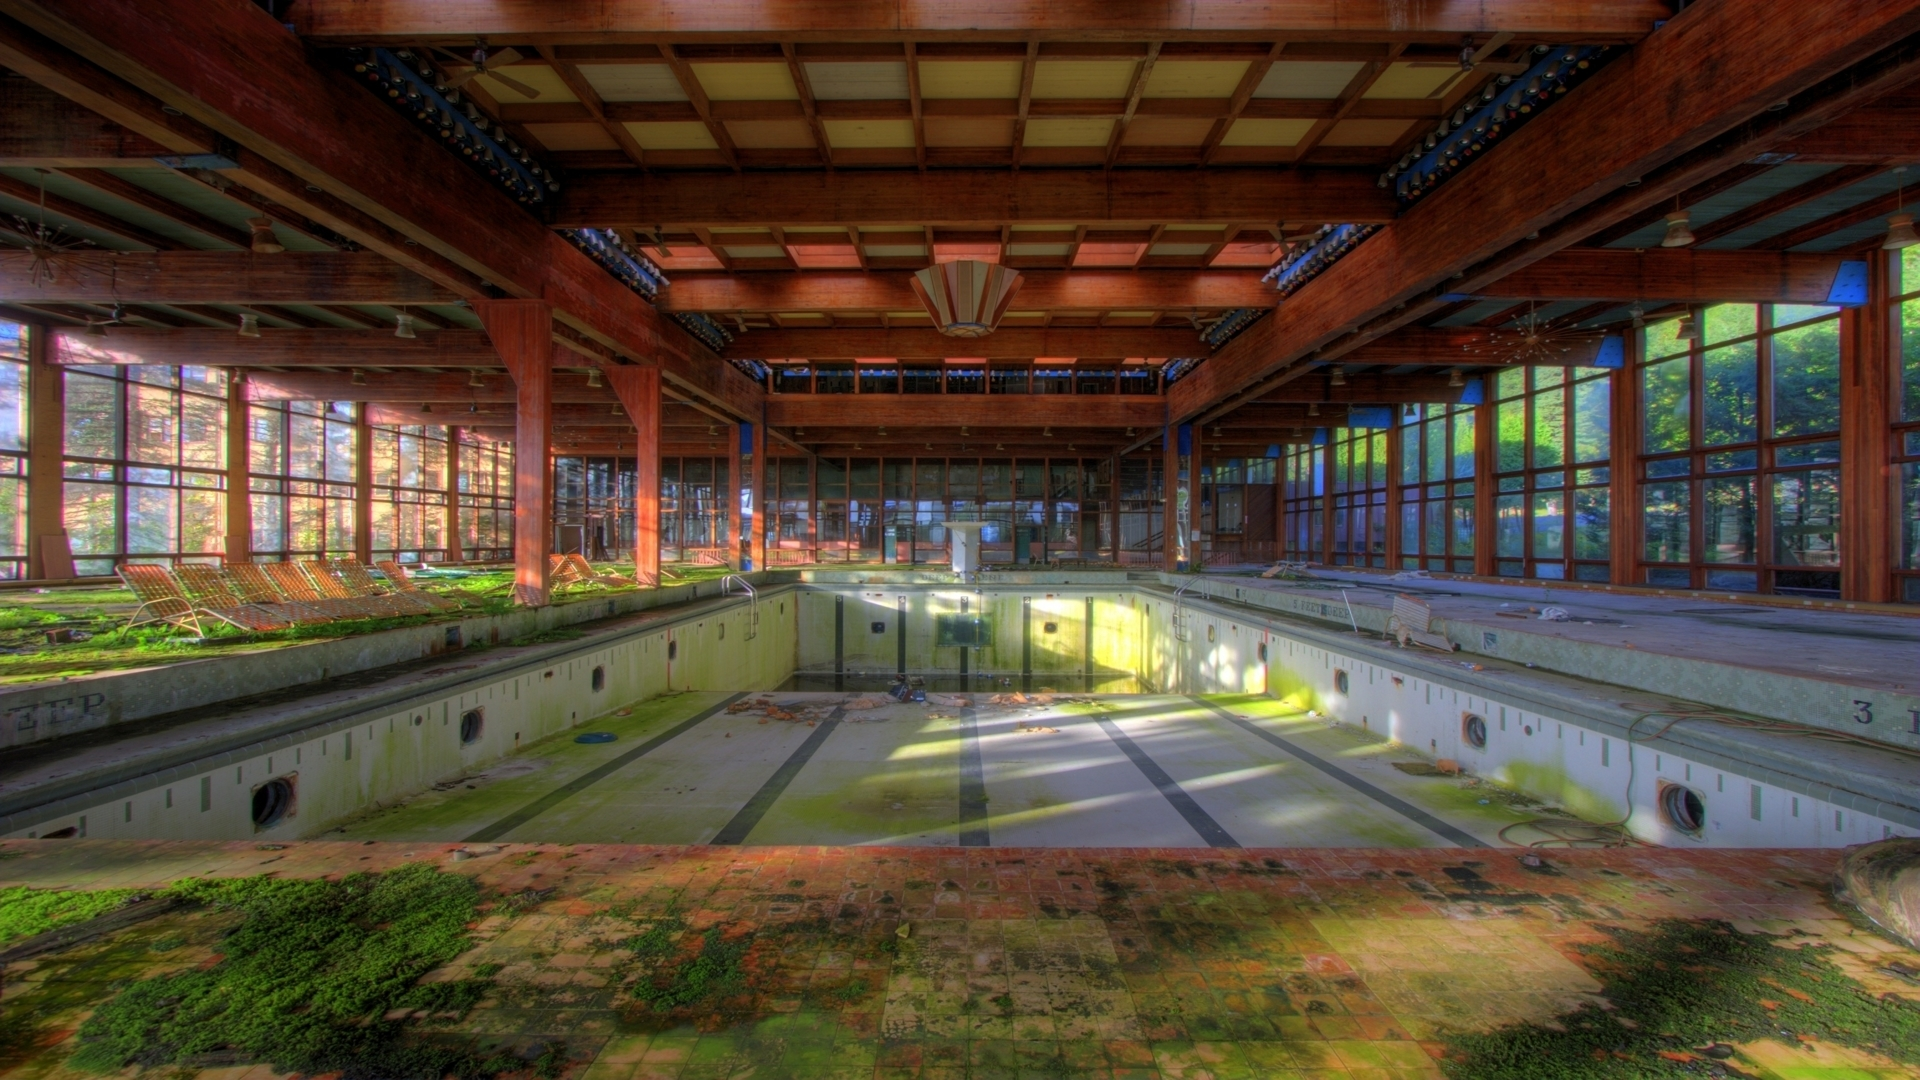 Pripyat Chernobyl swimming pools HD Wallpaper